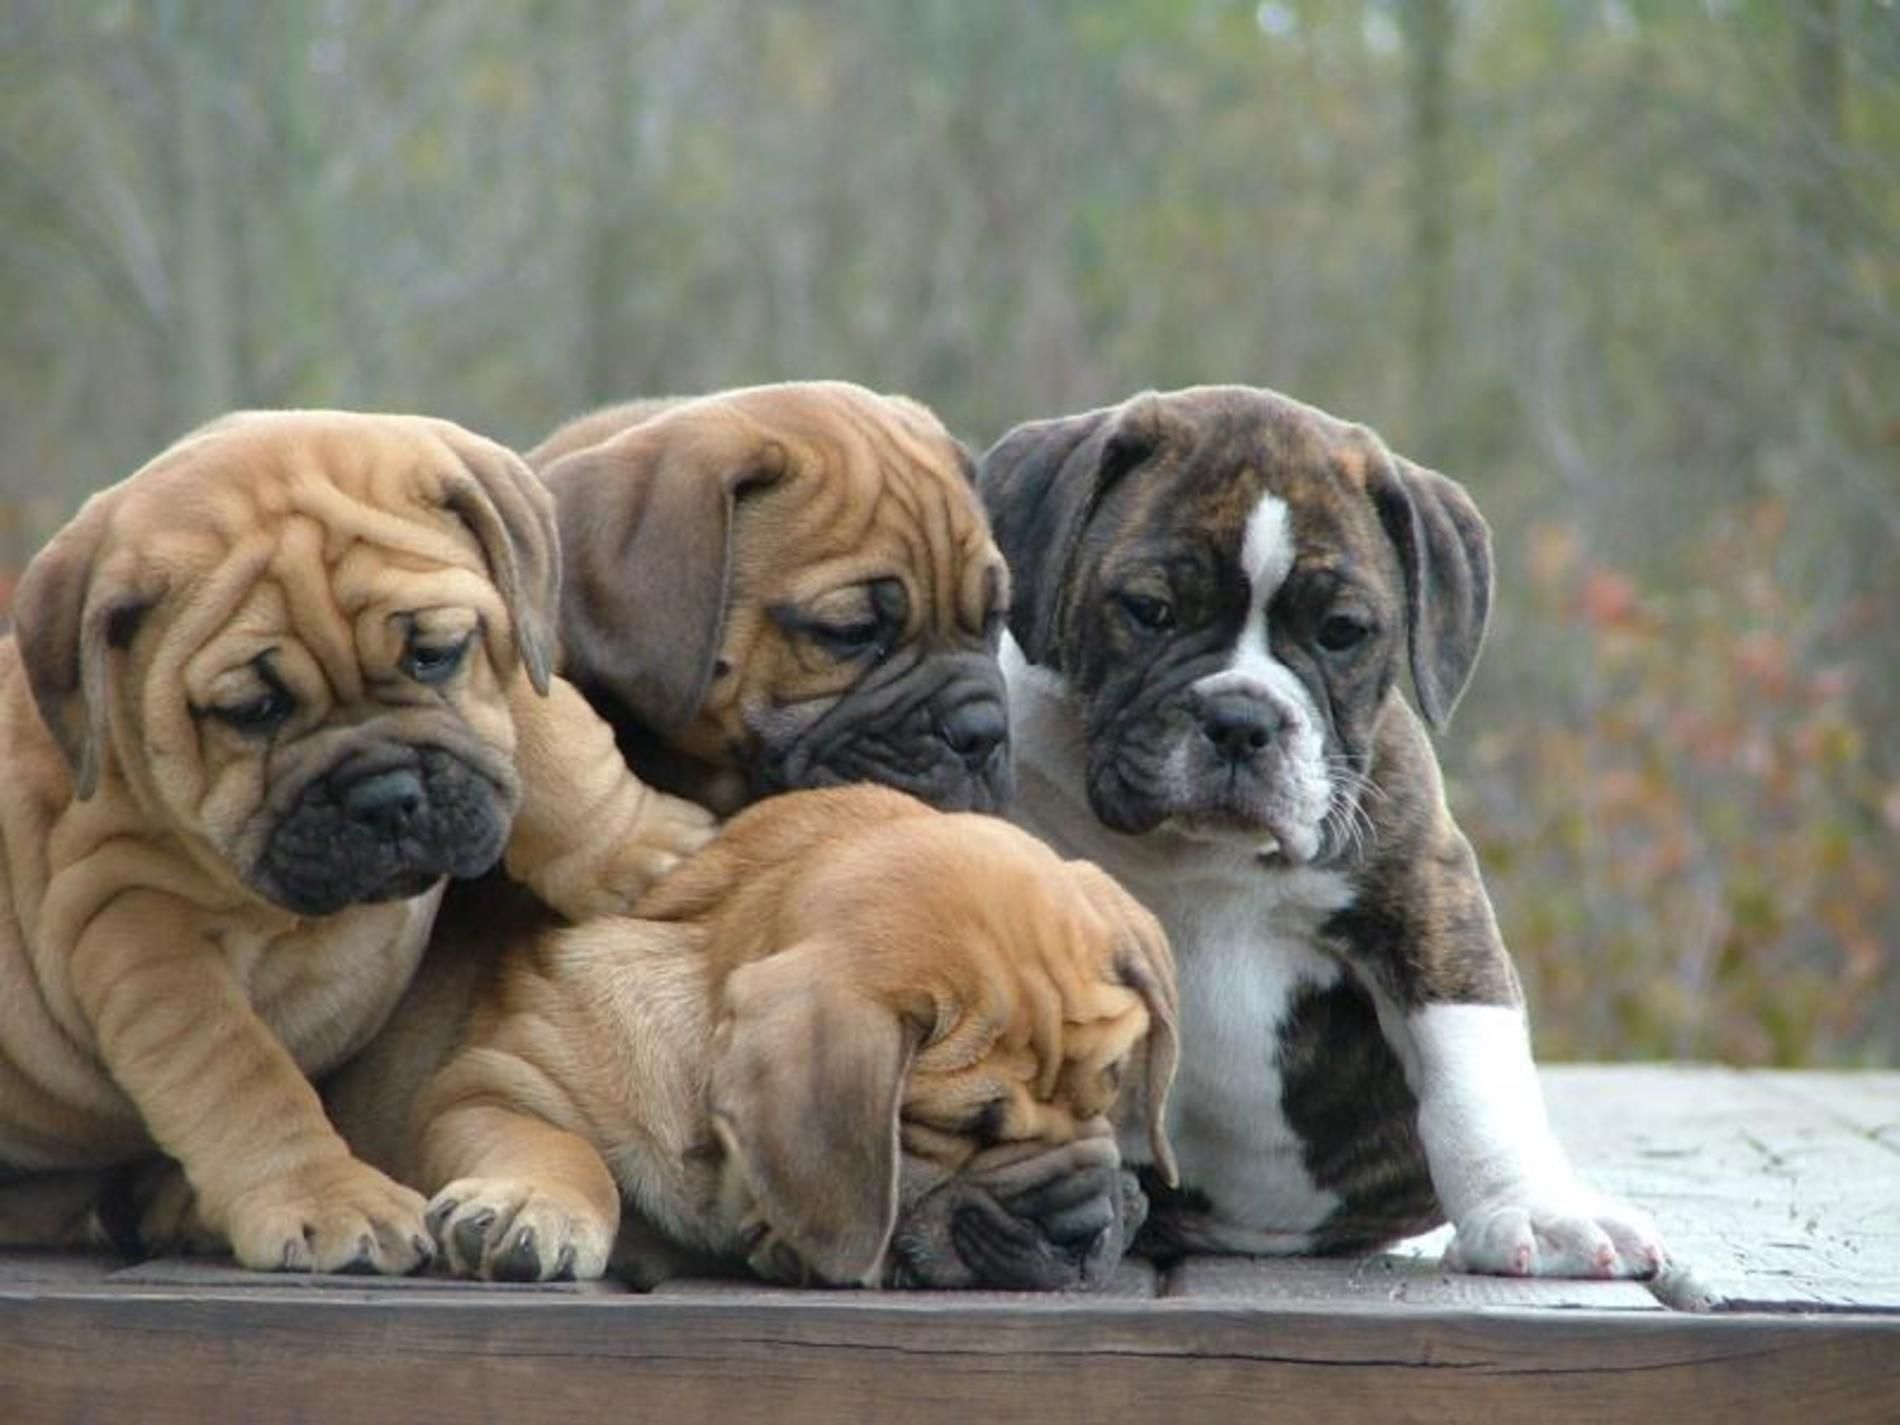 Baby animals photos baby animals ny daily news - Find This Pin And More On Animals By Christineathaye